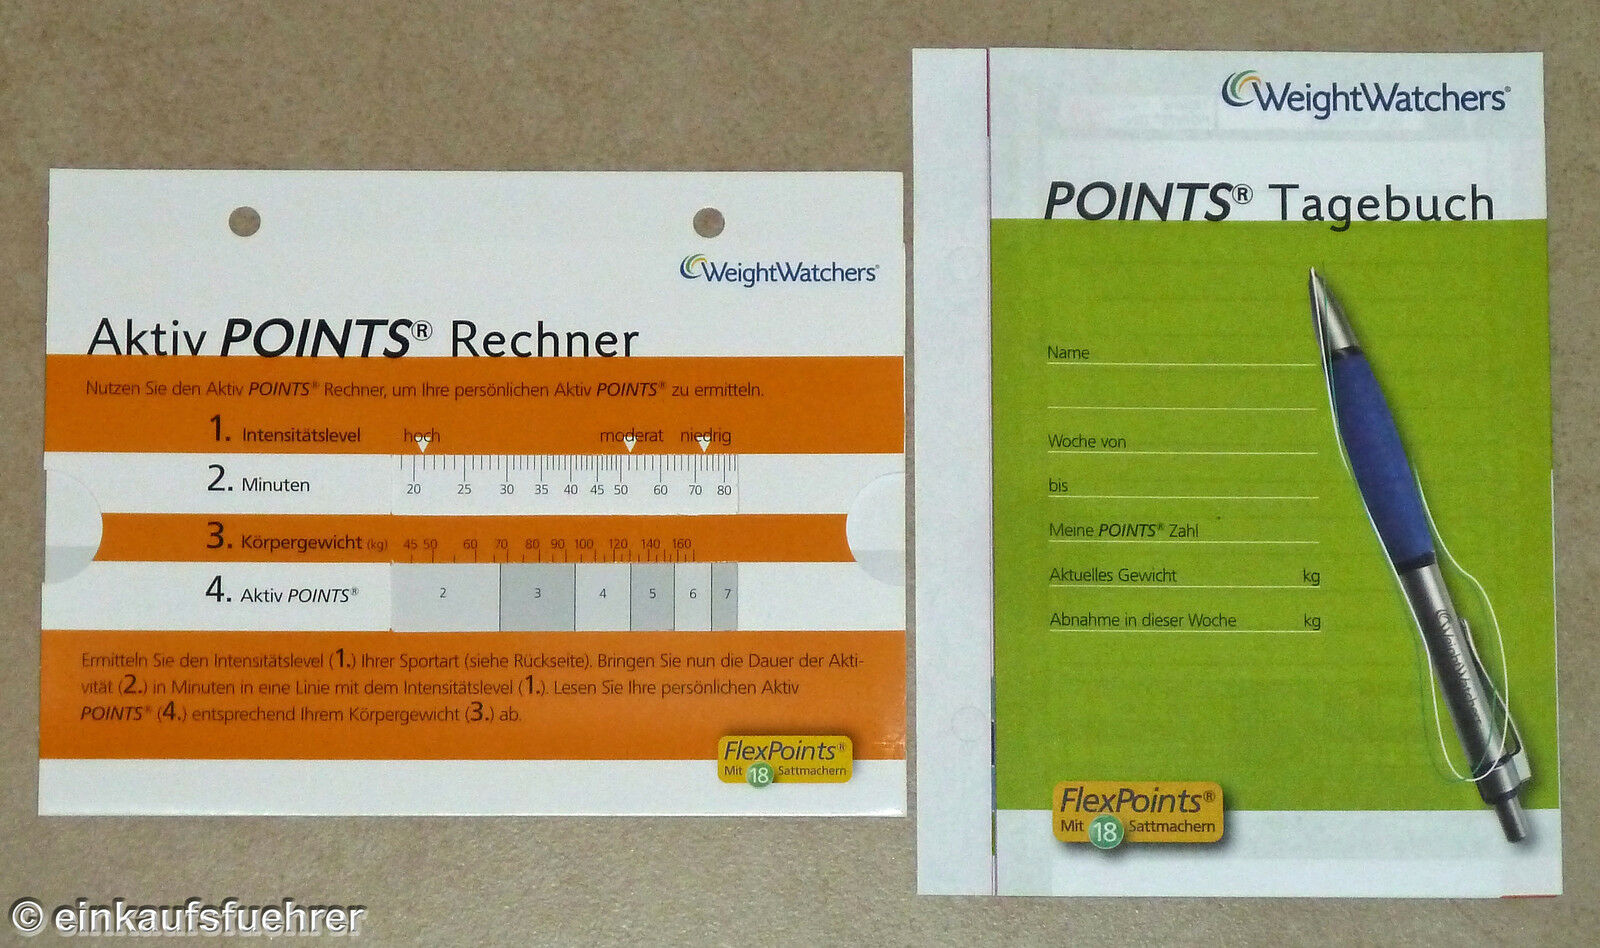 weight watchers aktiv points rechner tagebuch ebay. Black Bedroom Furniture Sets. Home Design Ideas